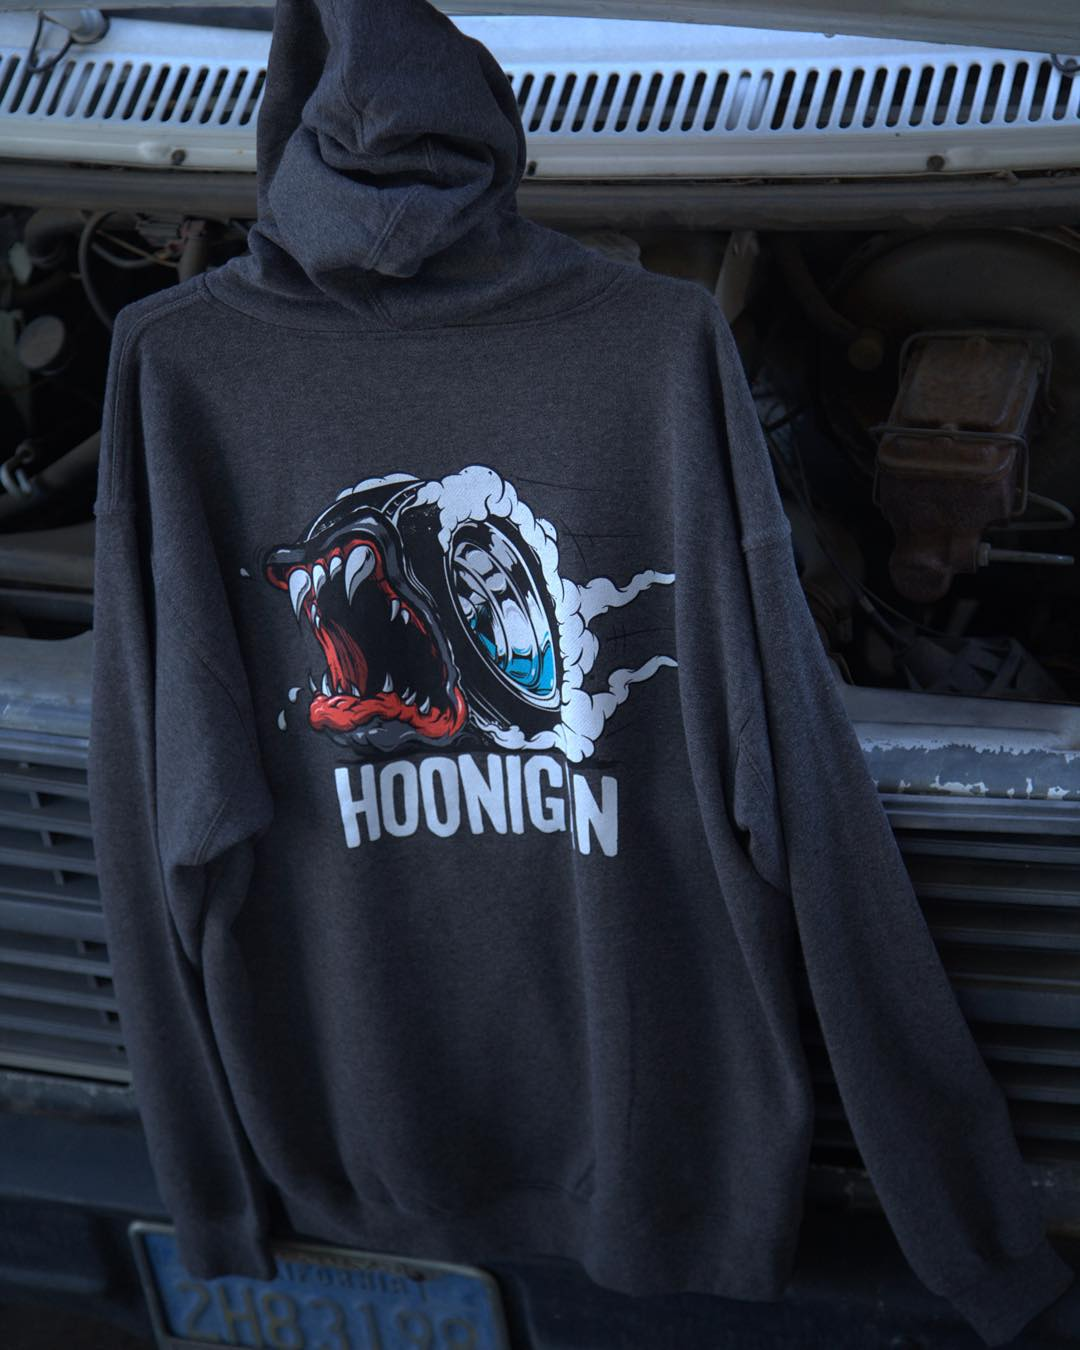 The Creature of The Hoon pullover hoodie: It, along with other rad gear for the changing of seasons, is just a click away through the link in our bio. #hooniganDOTcom